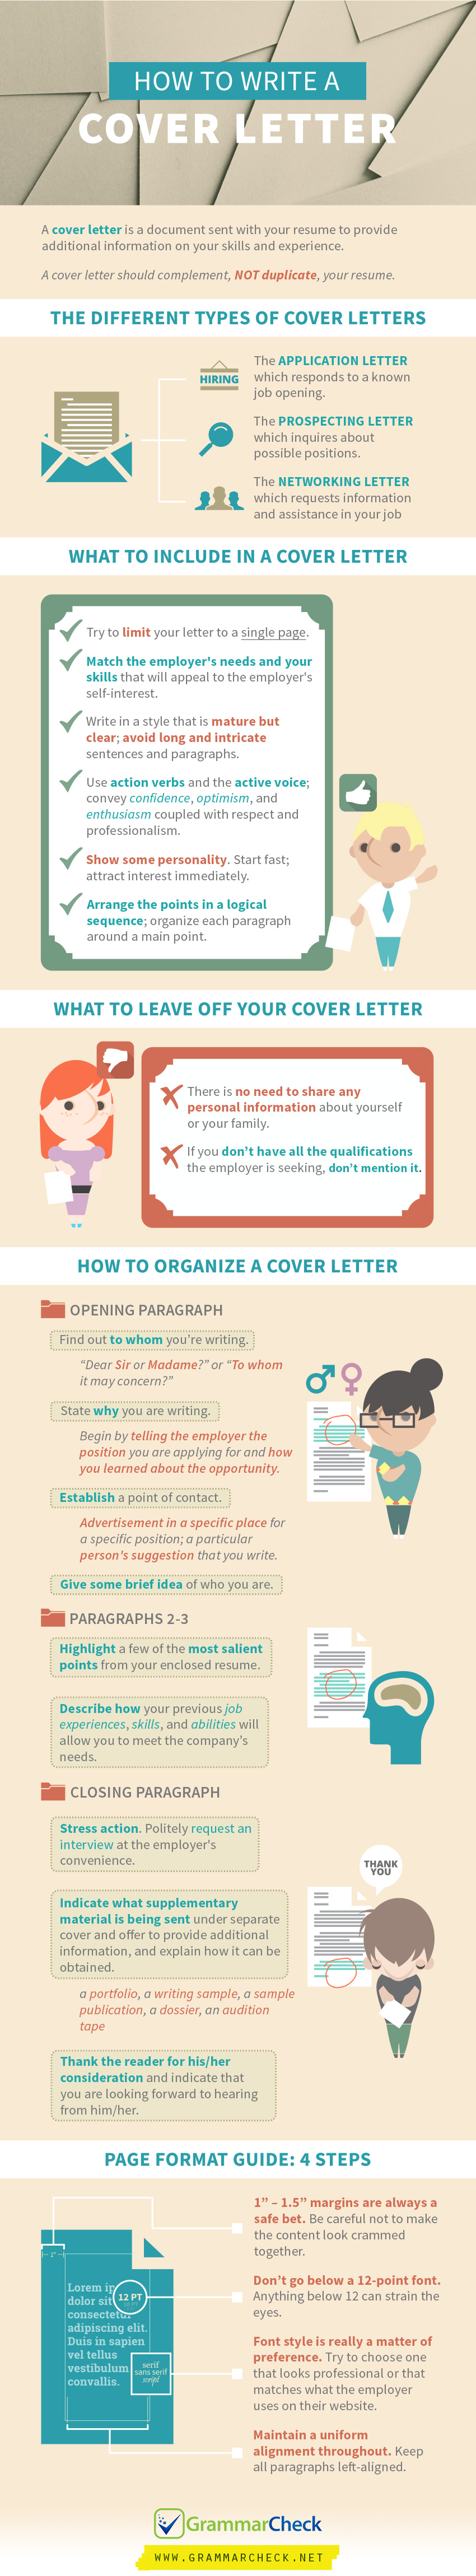 the elements of writing the perfect cover letter for your cv - How To Write The Perfect Cover Letter For A Job